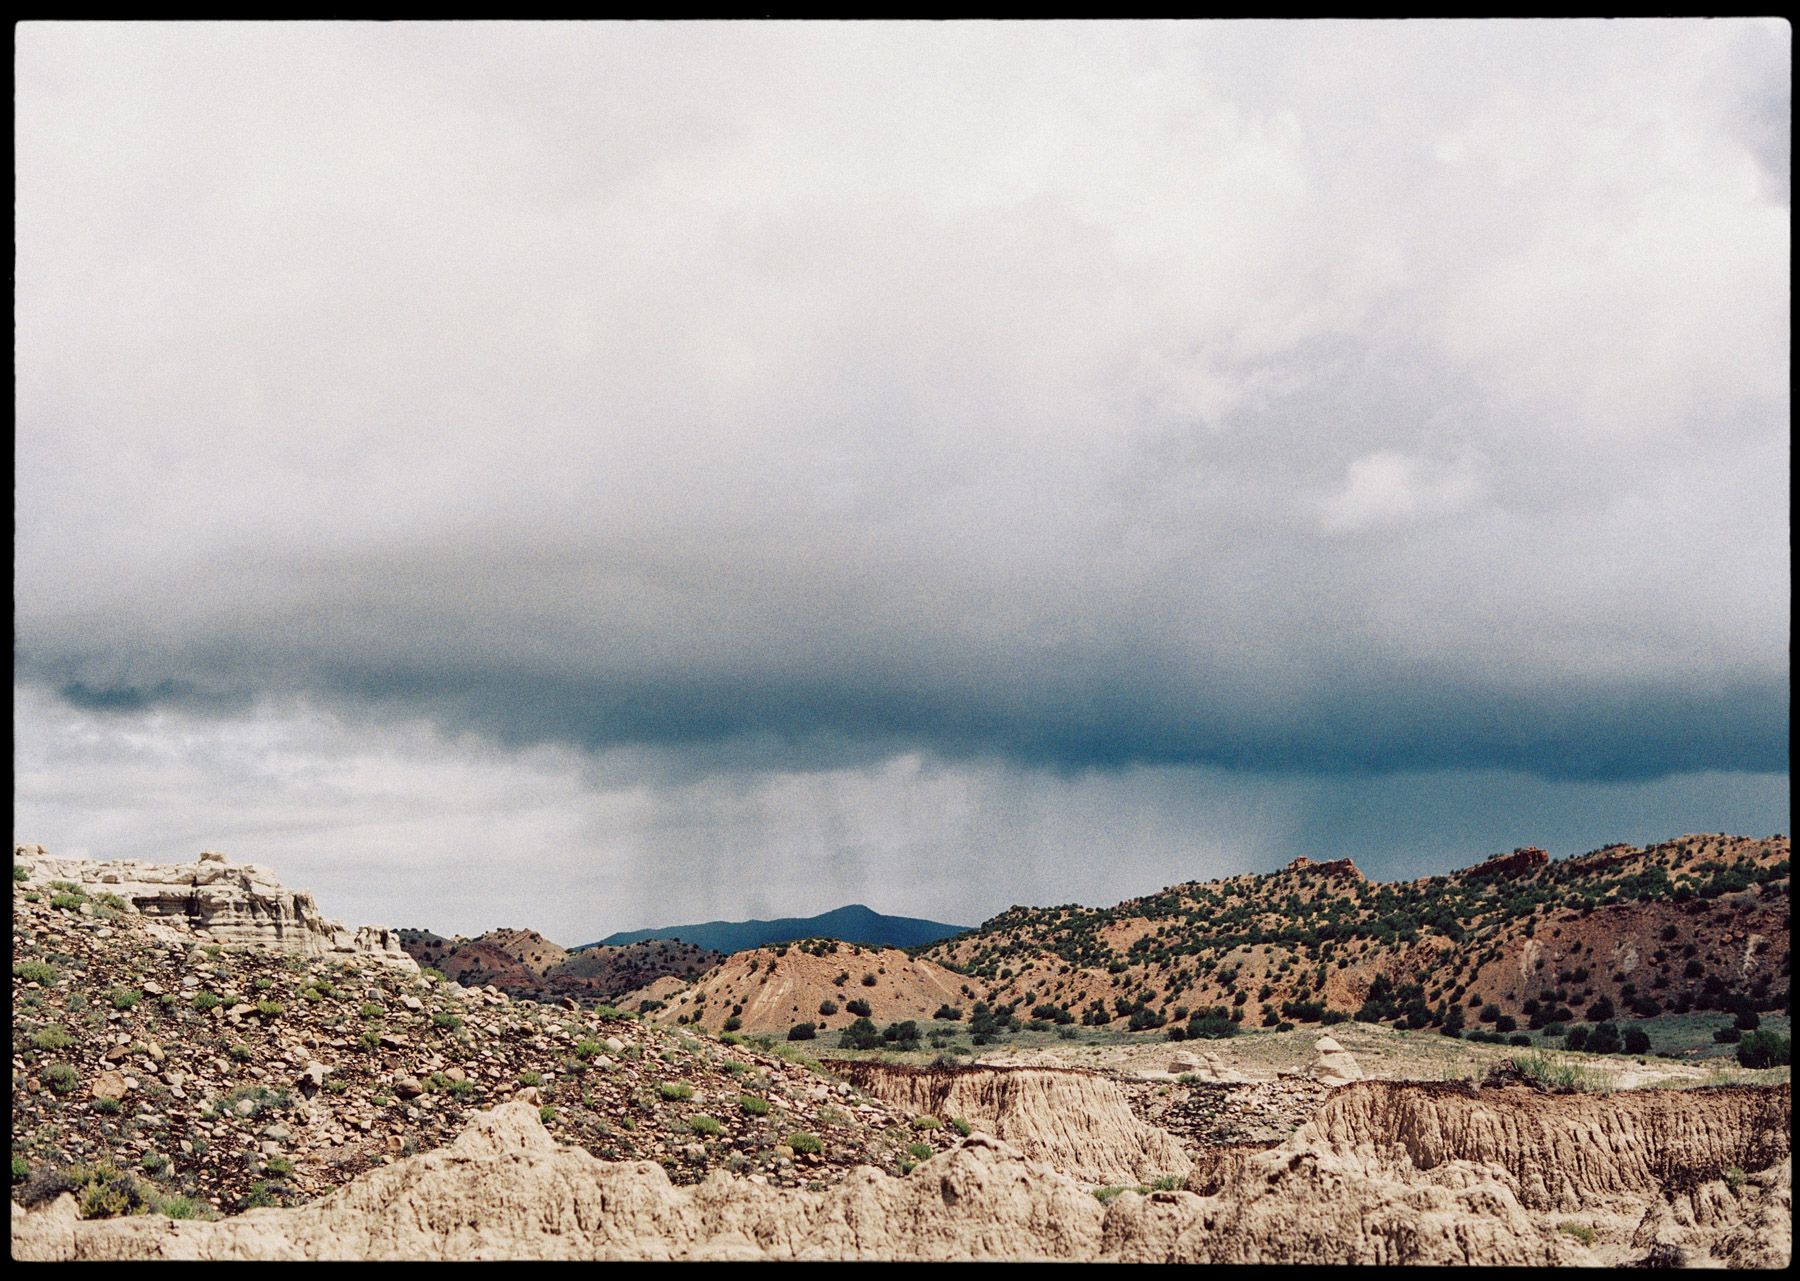 Ghost Ranch, New Mexico, Cereal Magazine, Georgia O'Keeffe, Justin Chung